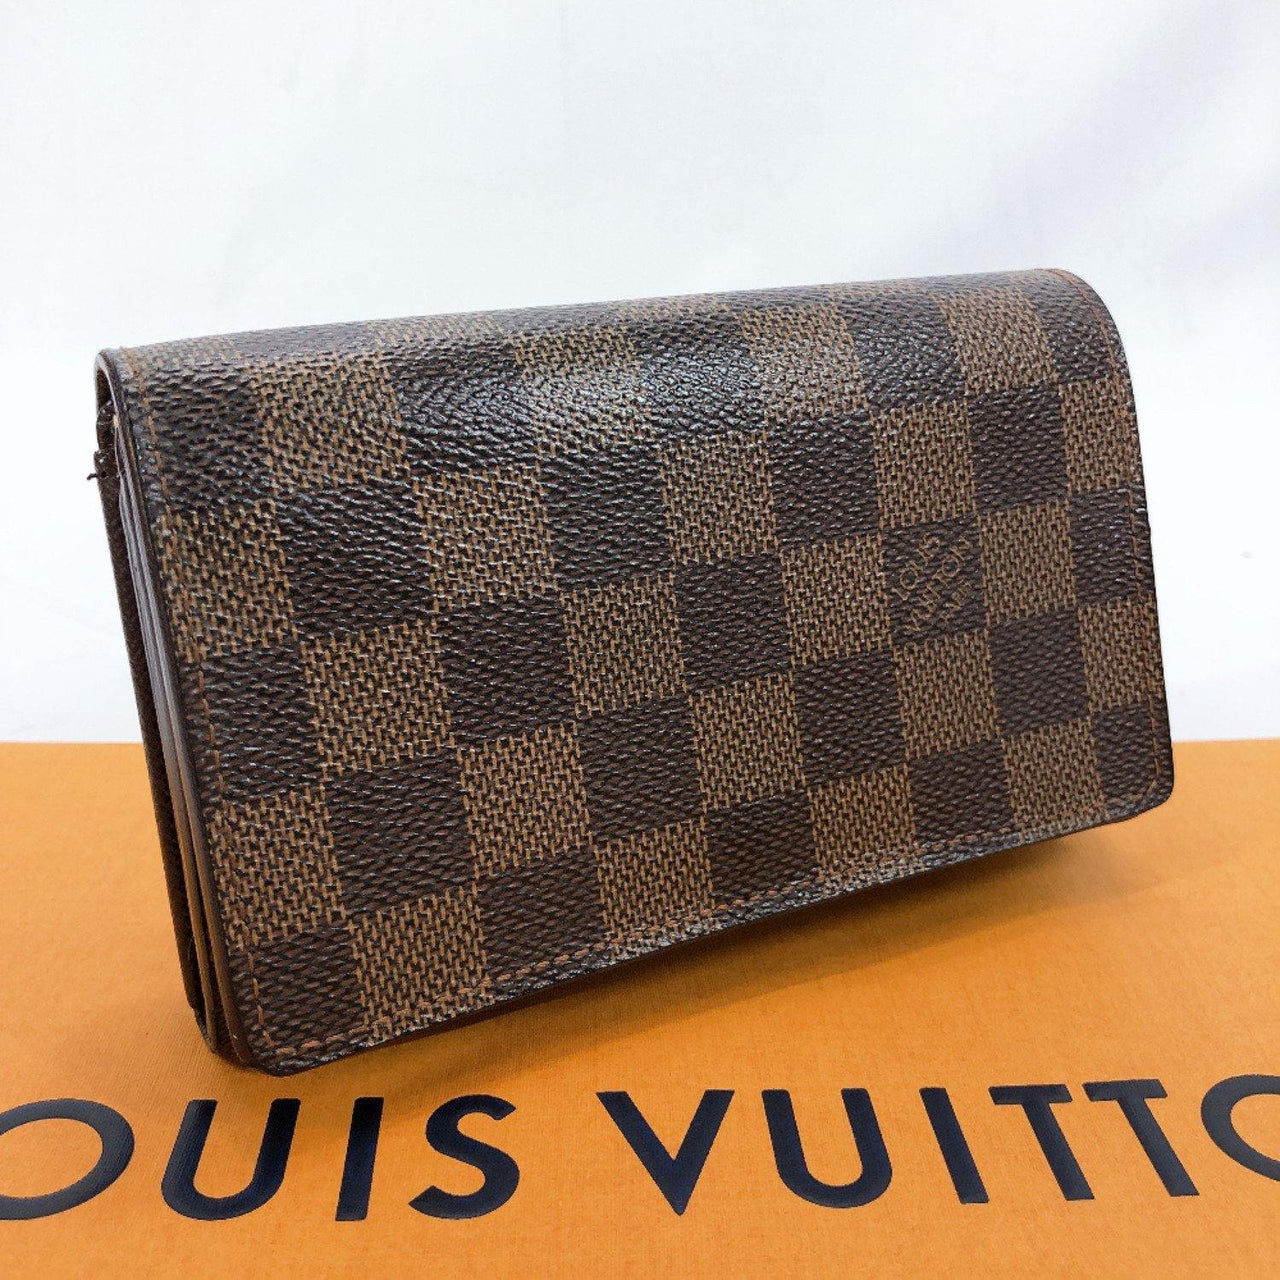 LOUIS VUITTON wallet N61736 Portefeiulle Tresol Damier canvas Brown unisex Used - JP-BRANDS.com